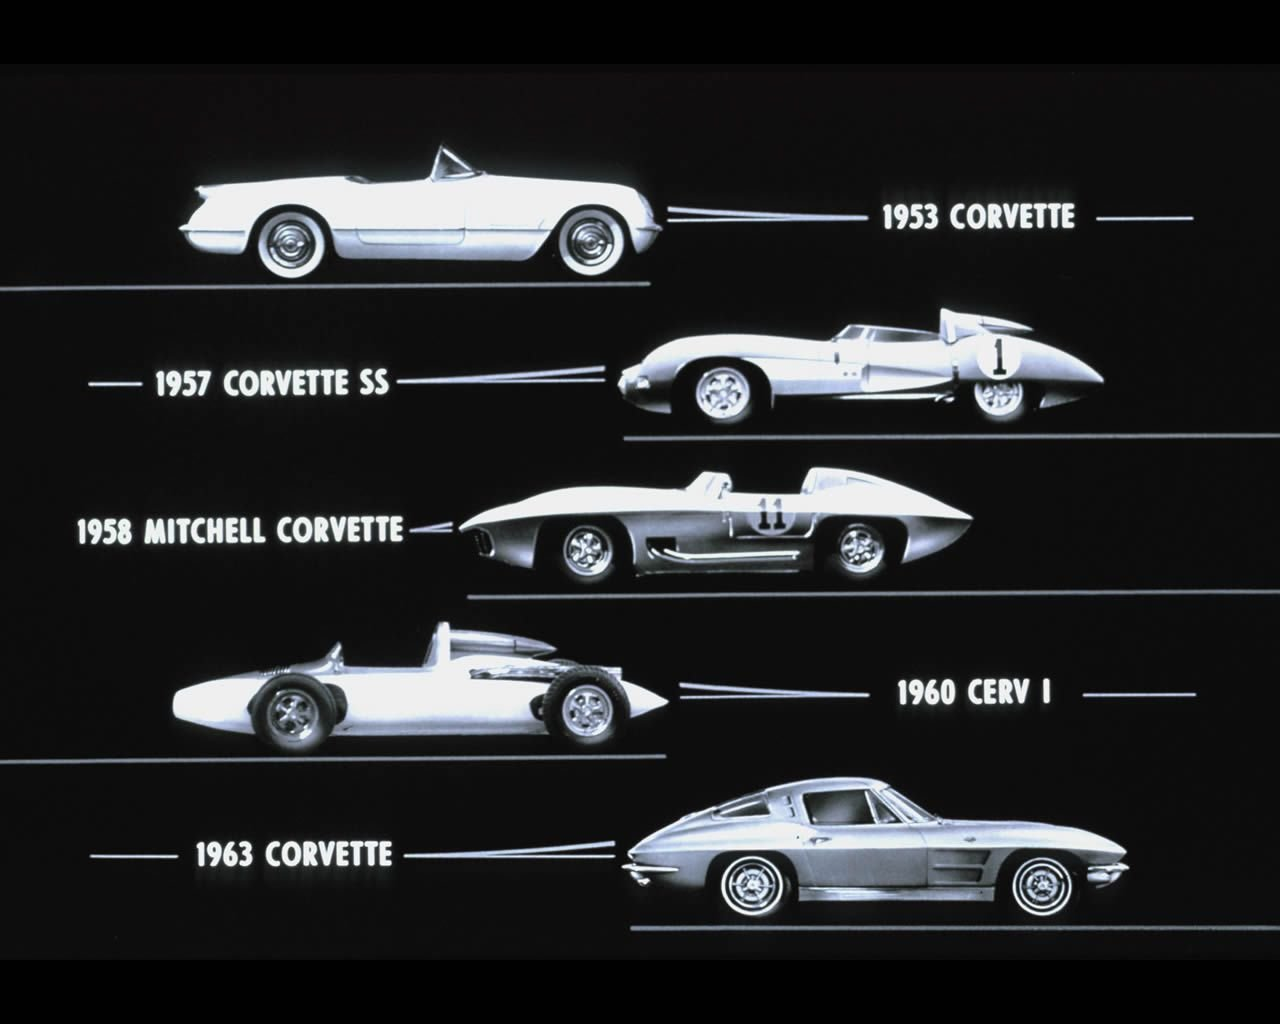 New Chevrolet Corvette Mitchell Sting Ray Race Car 1958 1961 On This Month